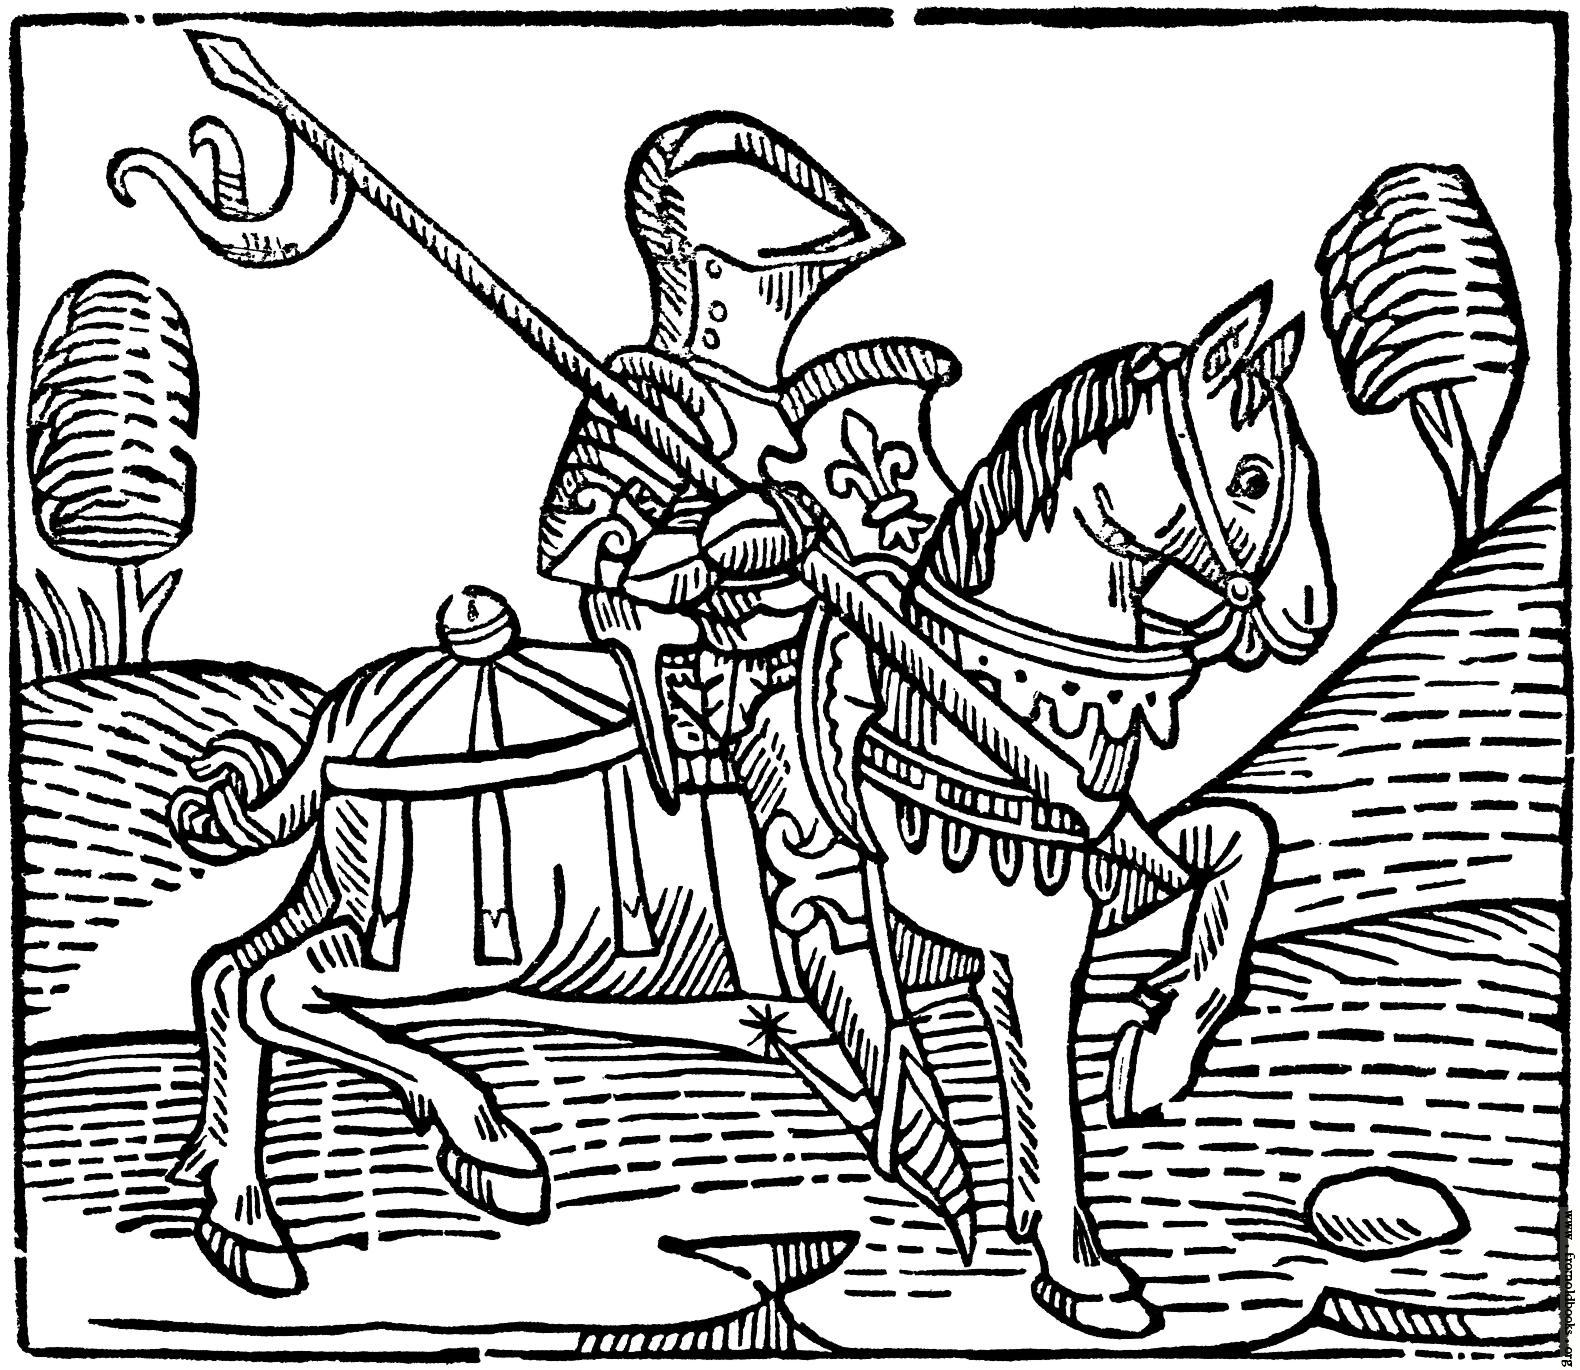 1580x1370 Cut Of A Knight. (From Caxton'S